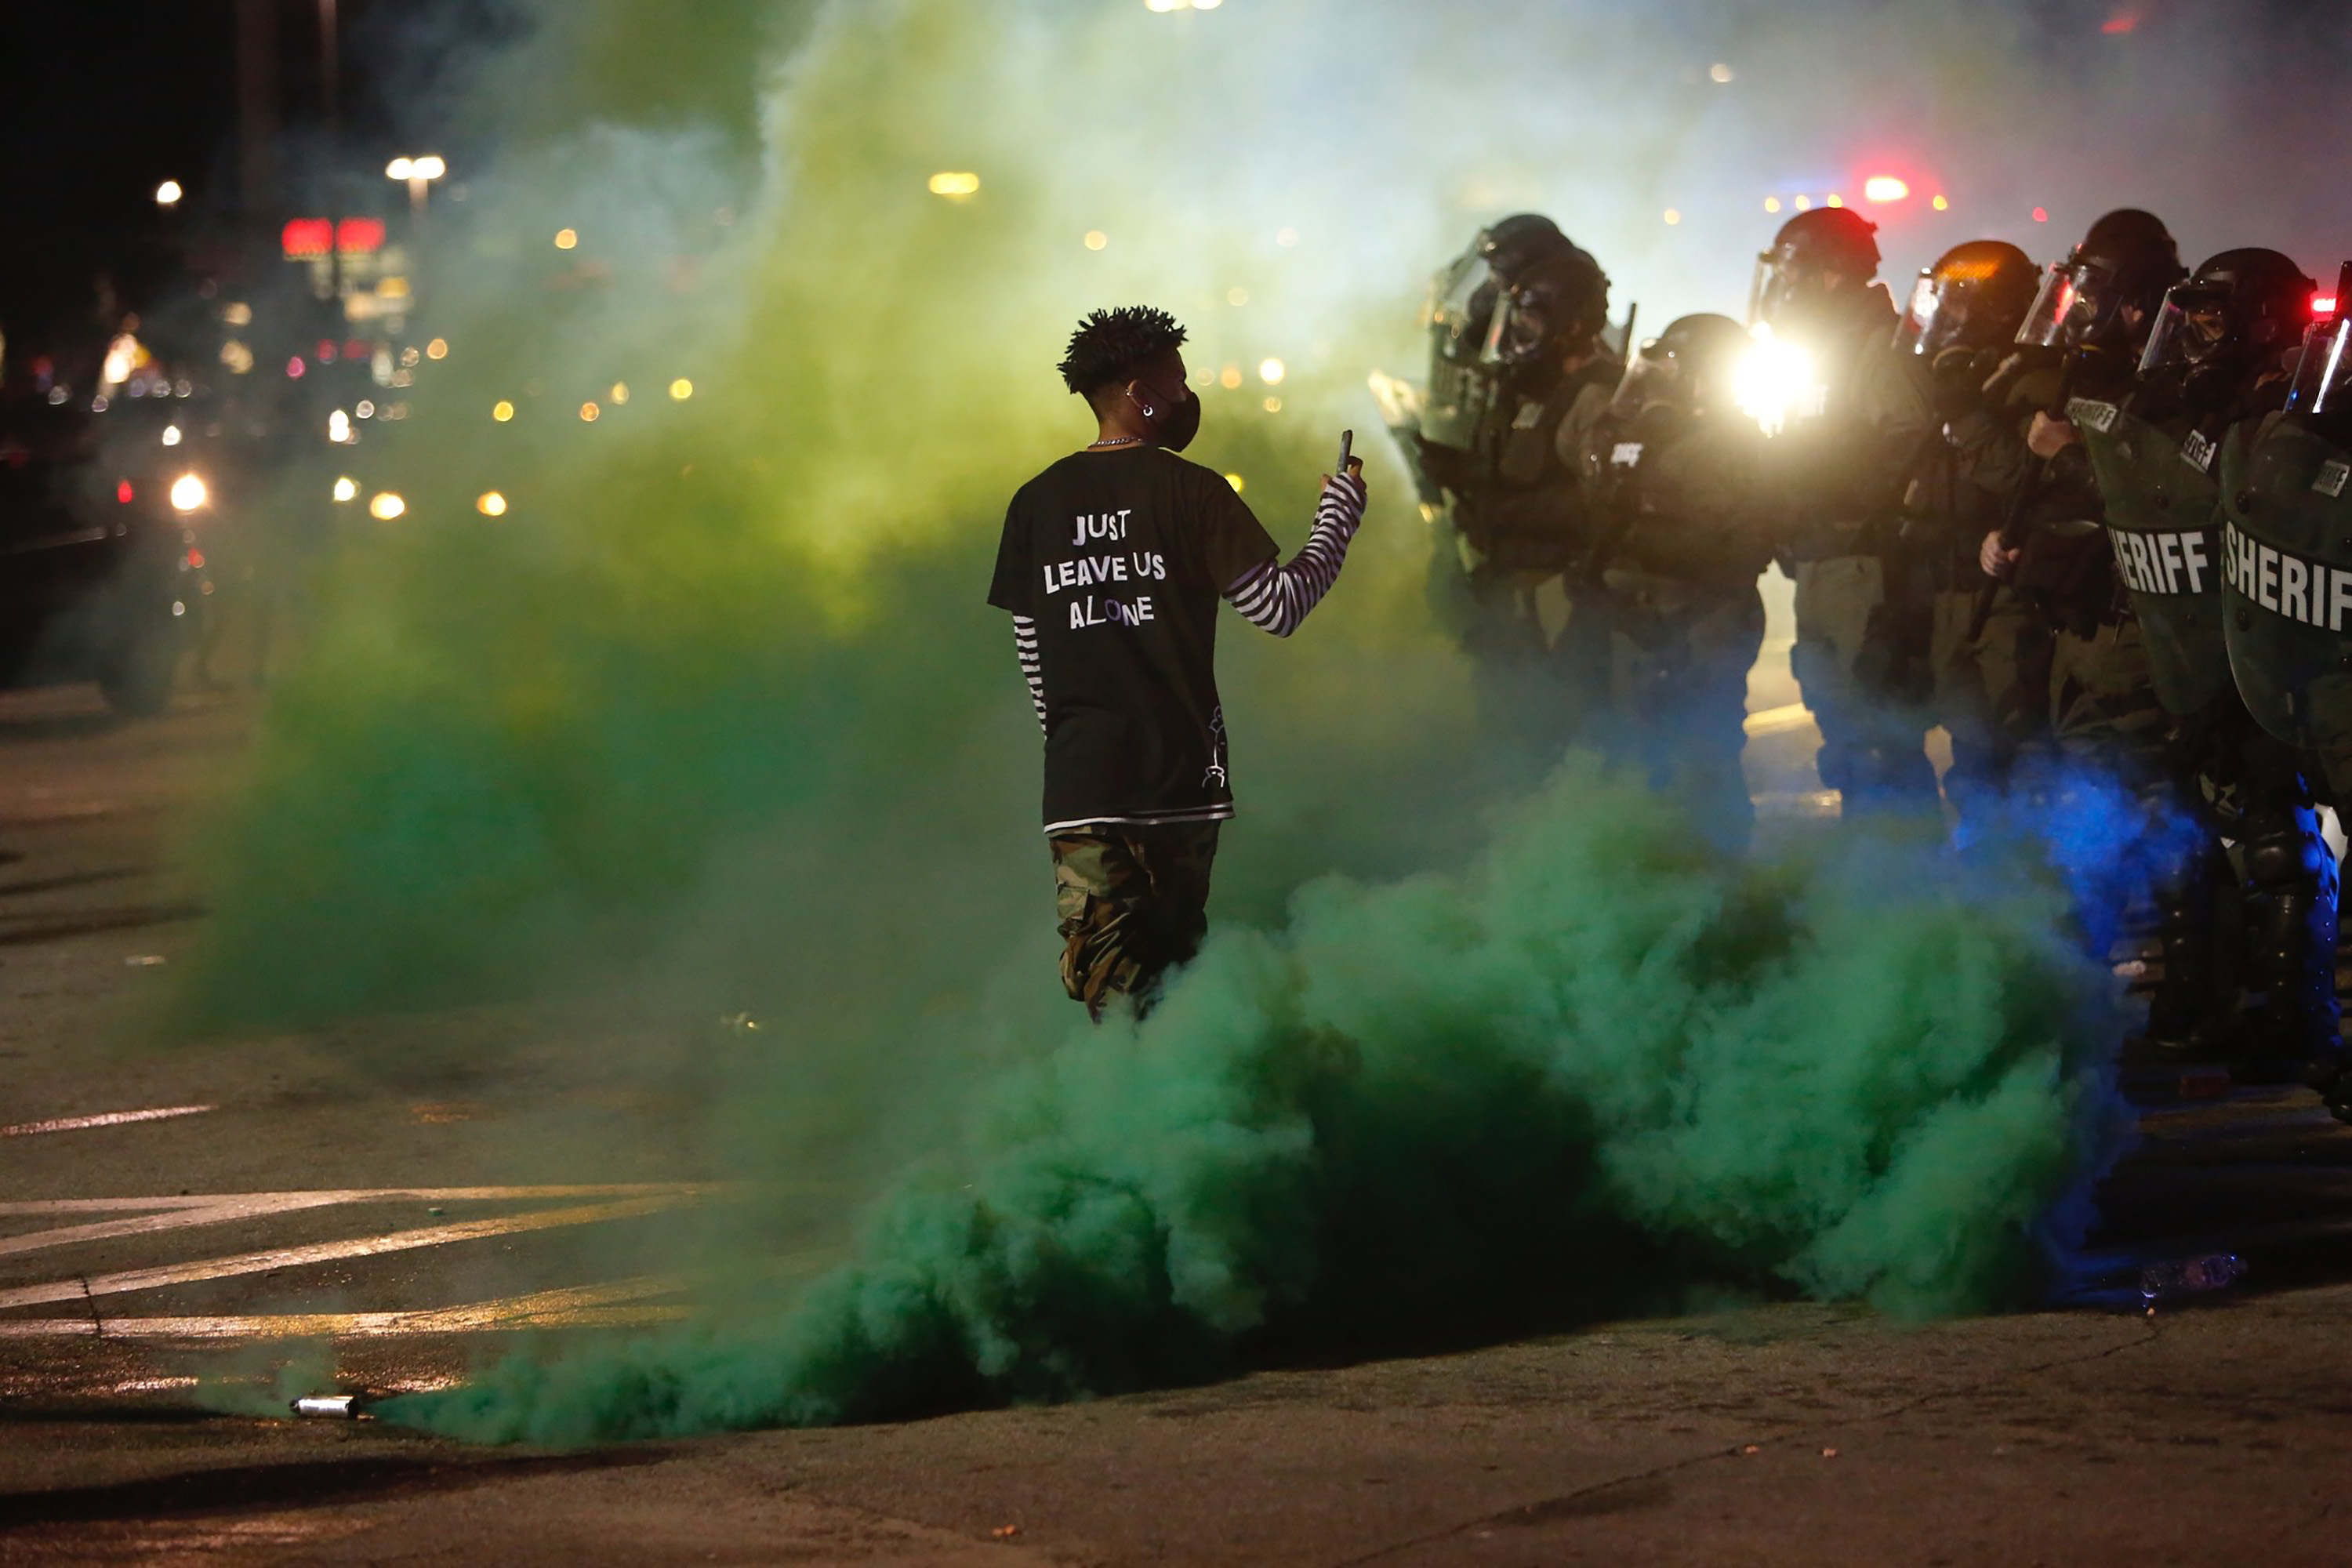 A protester walks through smoke while filming Hillsborough County sheriff's deputies in Tampa, Florida, on May 30.